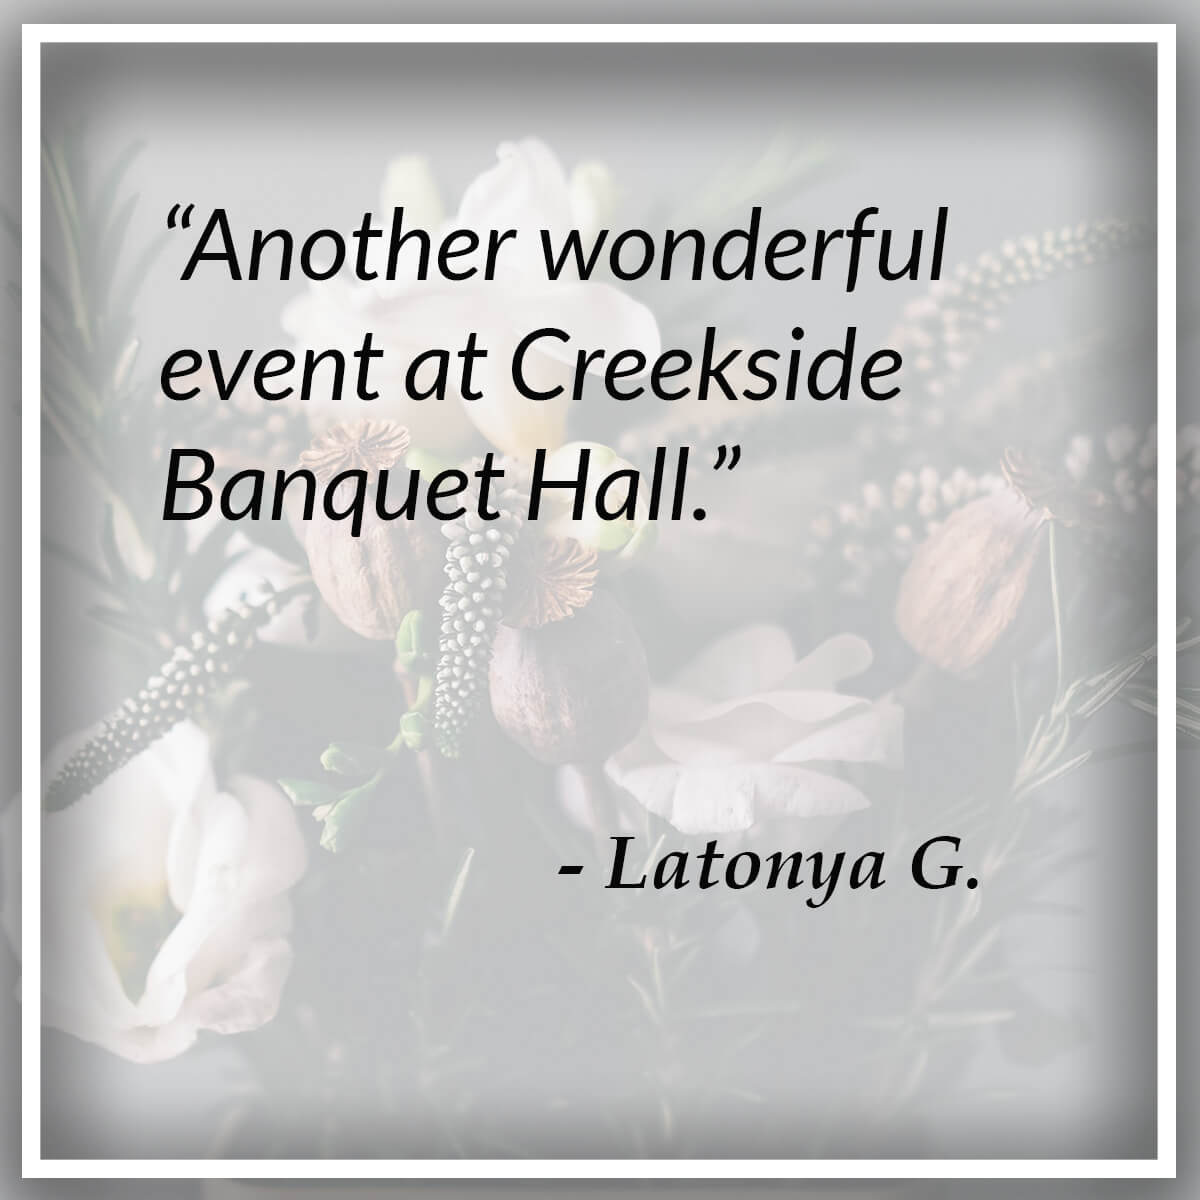 Another wonderful event at Creekside Banquet Hall - Latonya G.